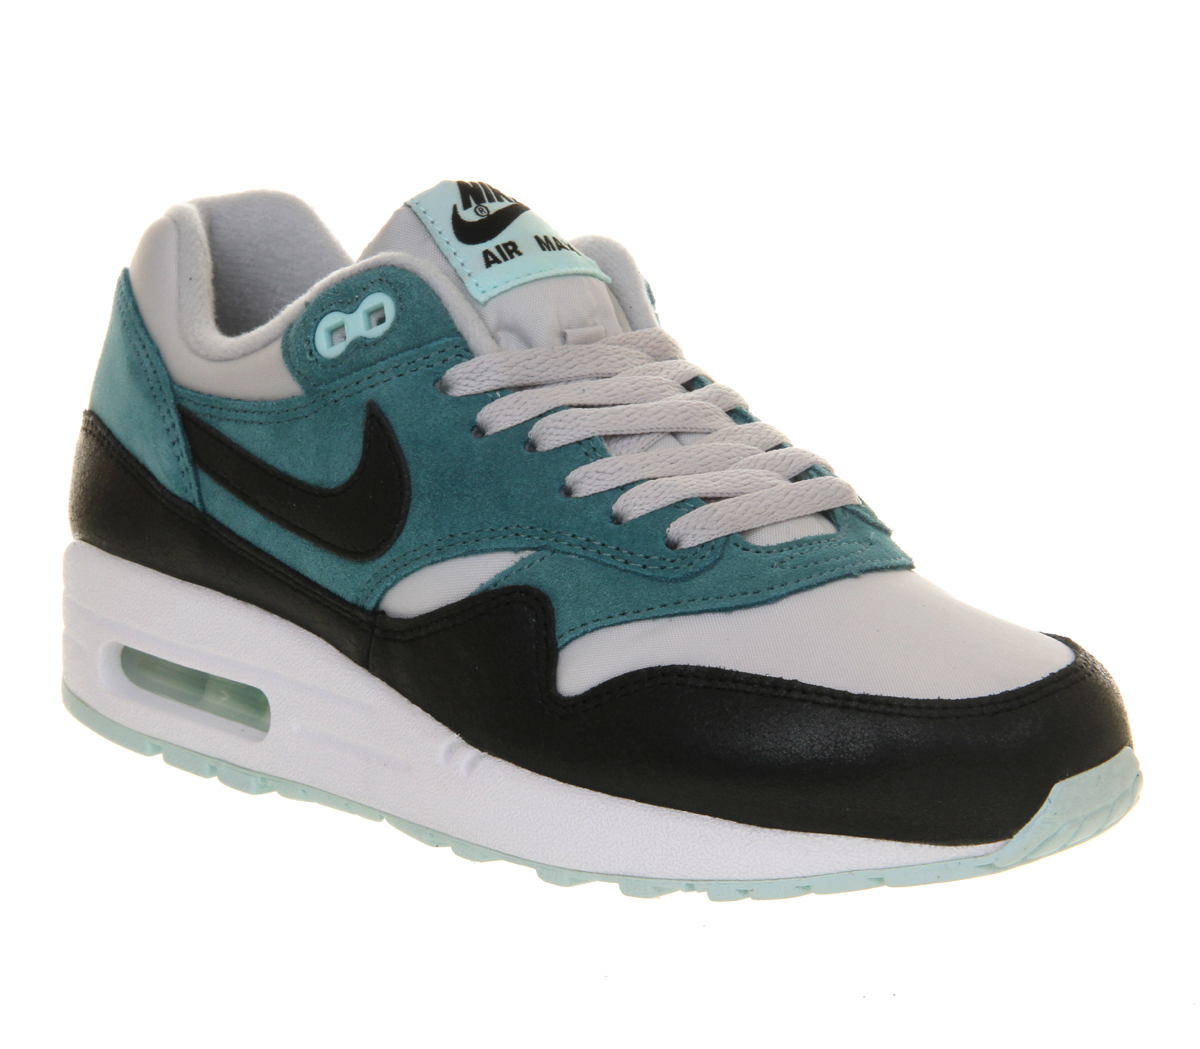 Nike Zoom Grey And Green Air Max 1